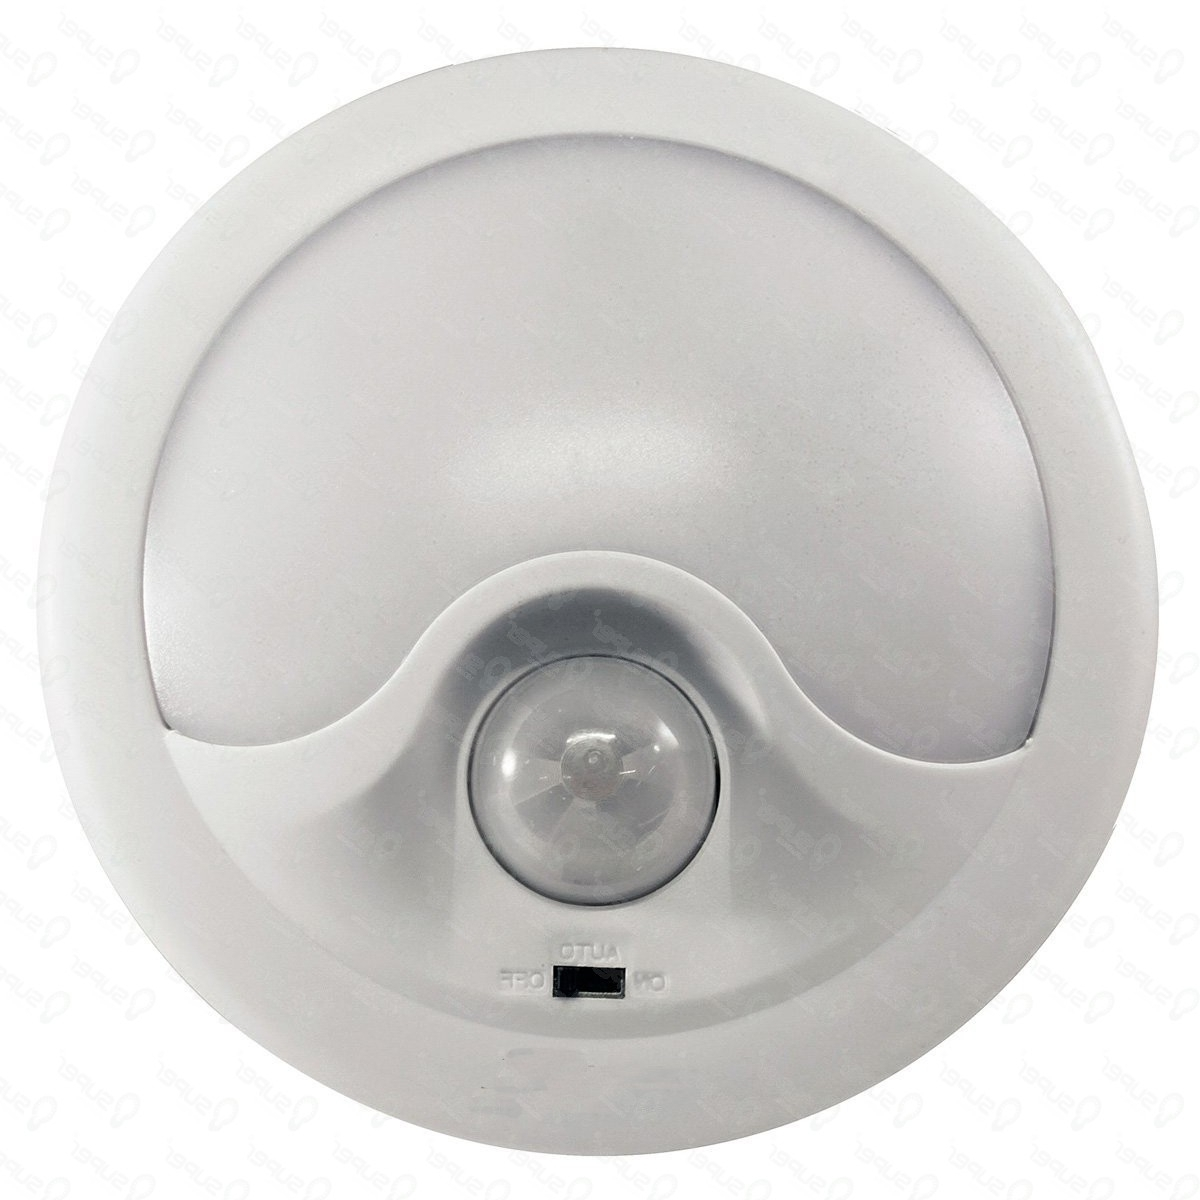 Motion Sensor Ceiling Light Fixture Amazing Outdoor Ceiling Fan With Throughout Popular Outdoor Ceiling Fans With Motion Sensor Light (View 10 of 20)